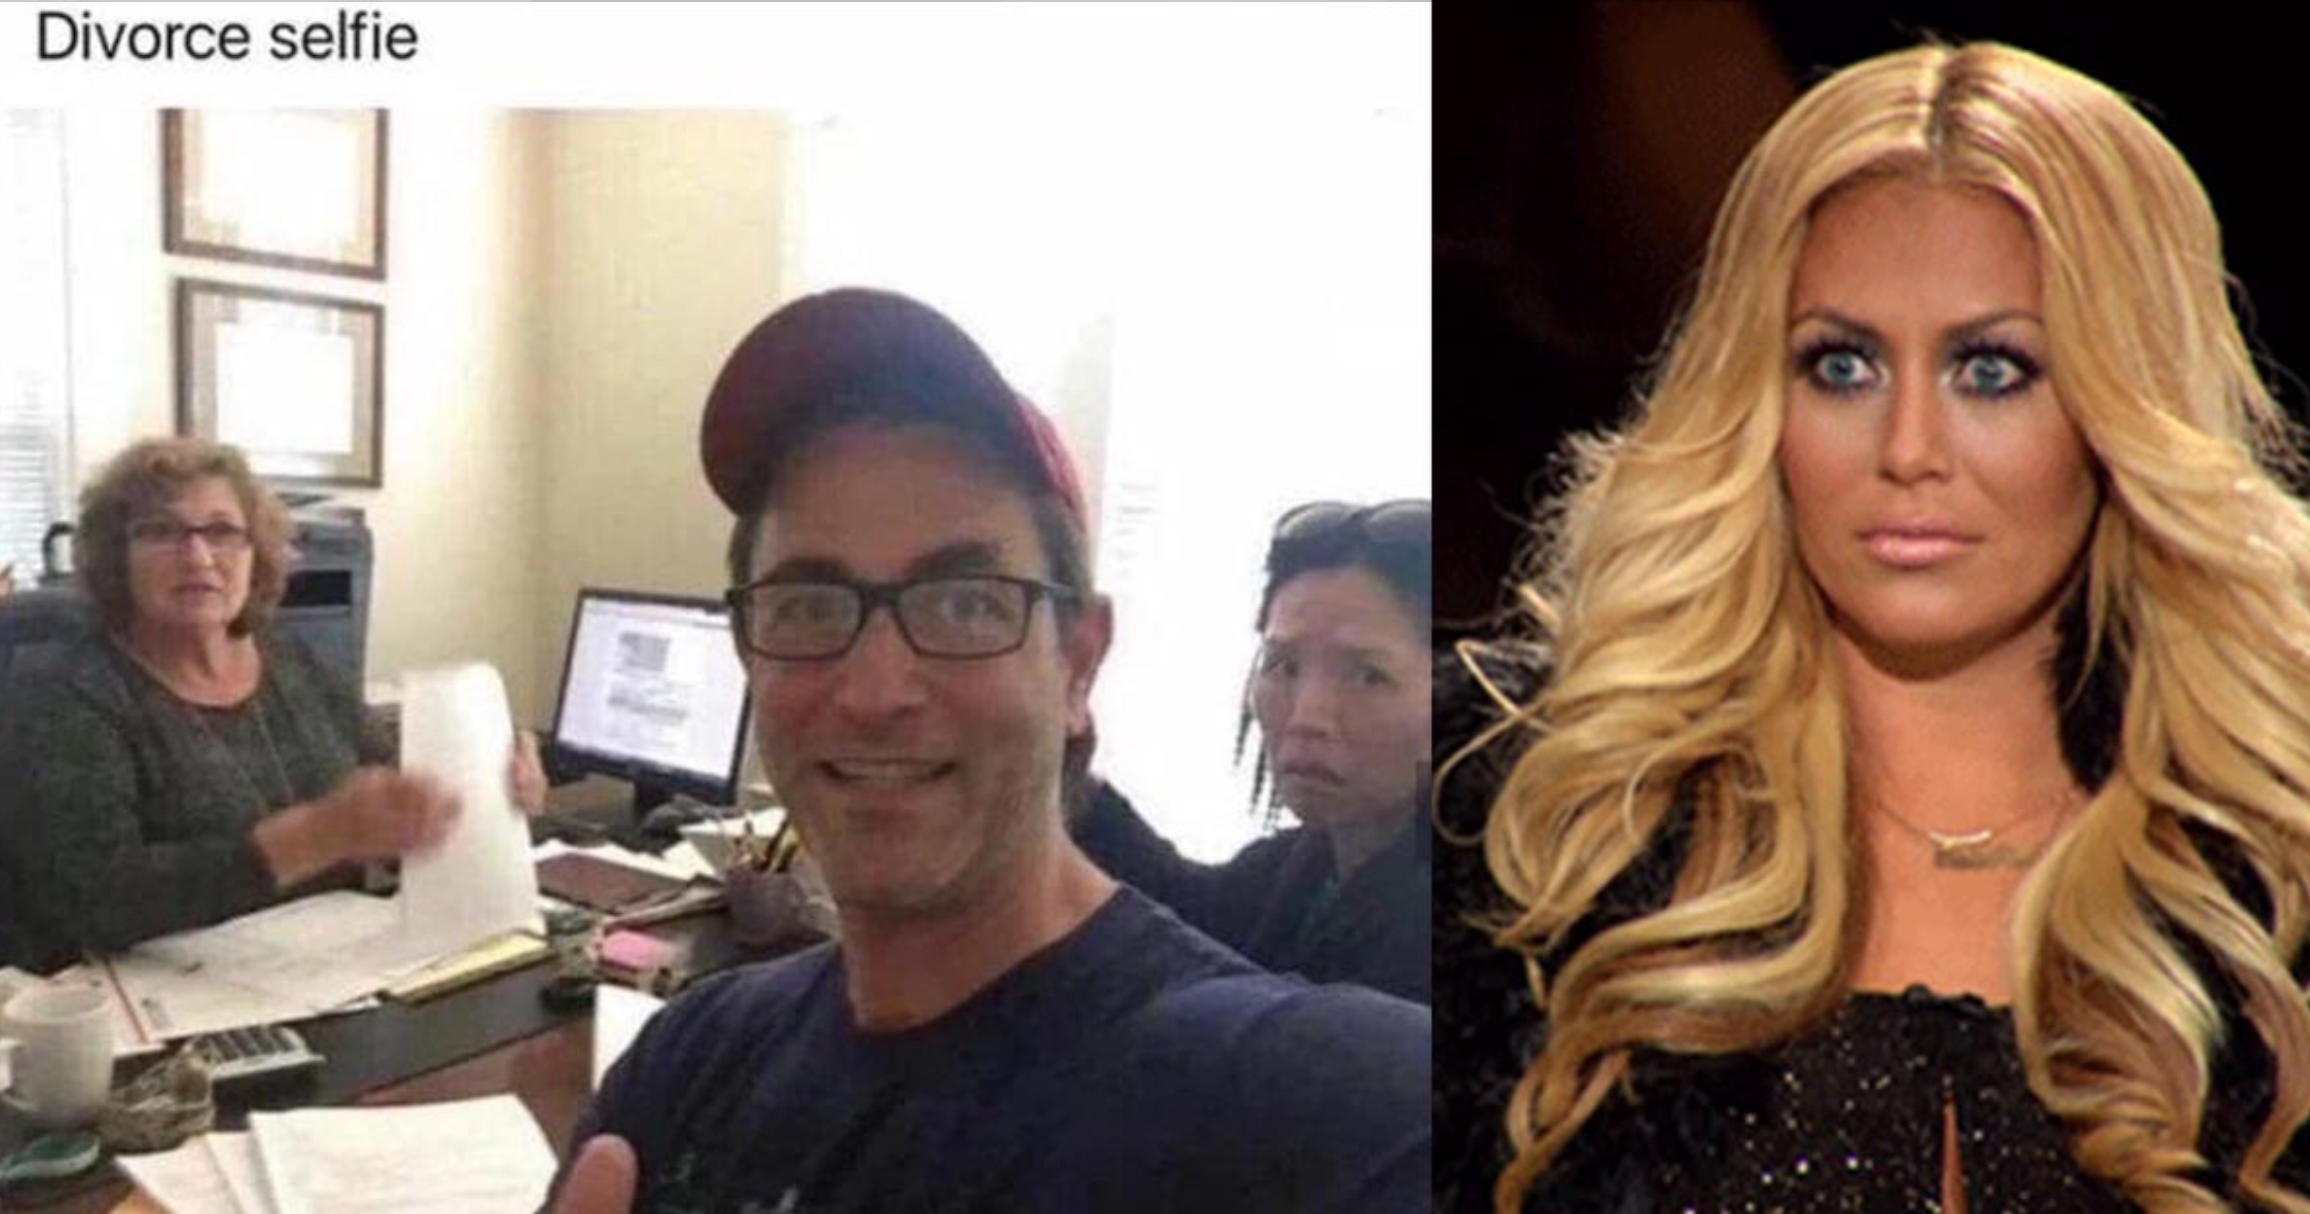 15 Family Selfies That Are Horrifyingly Inappropriate